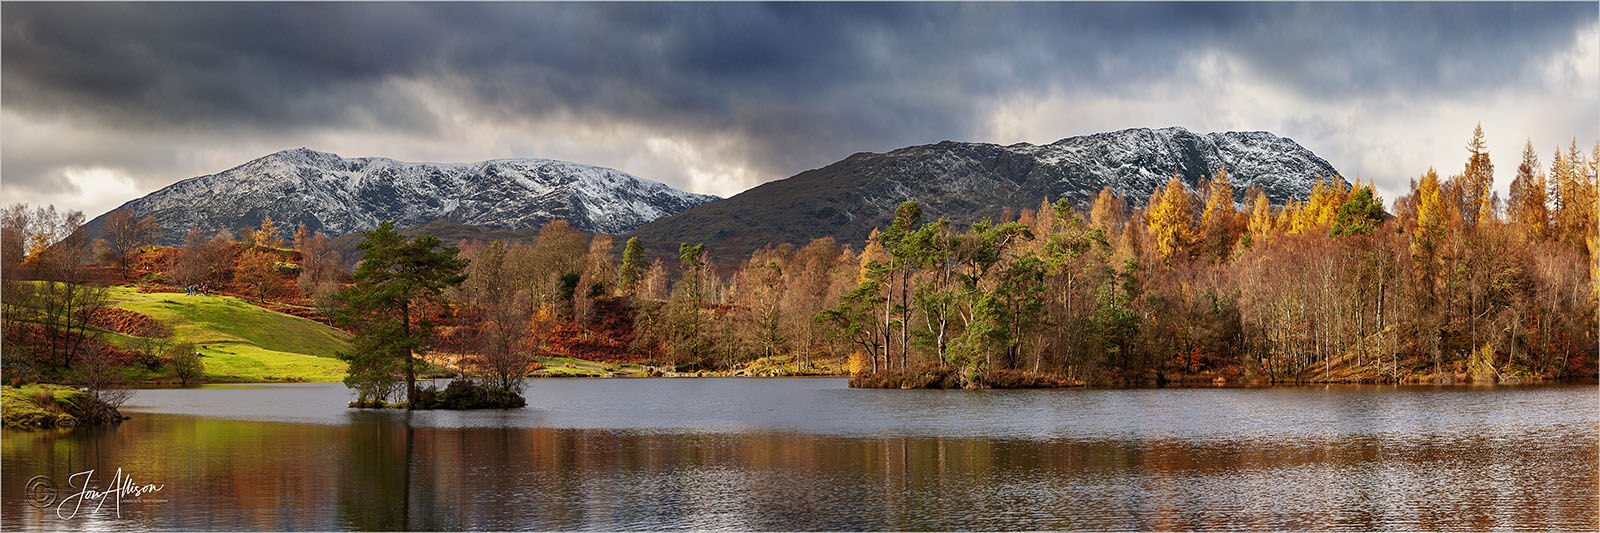 Coniston Fells from Tarn Hows 2